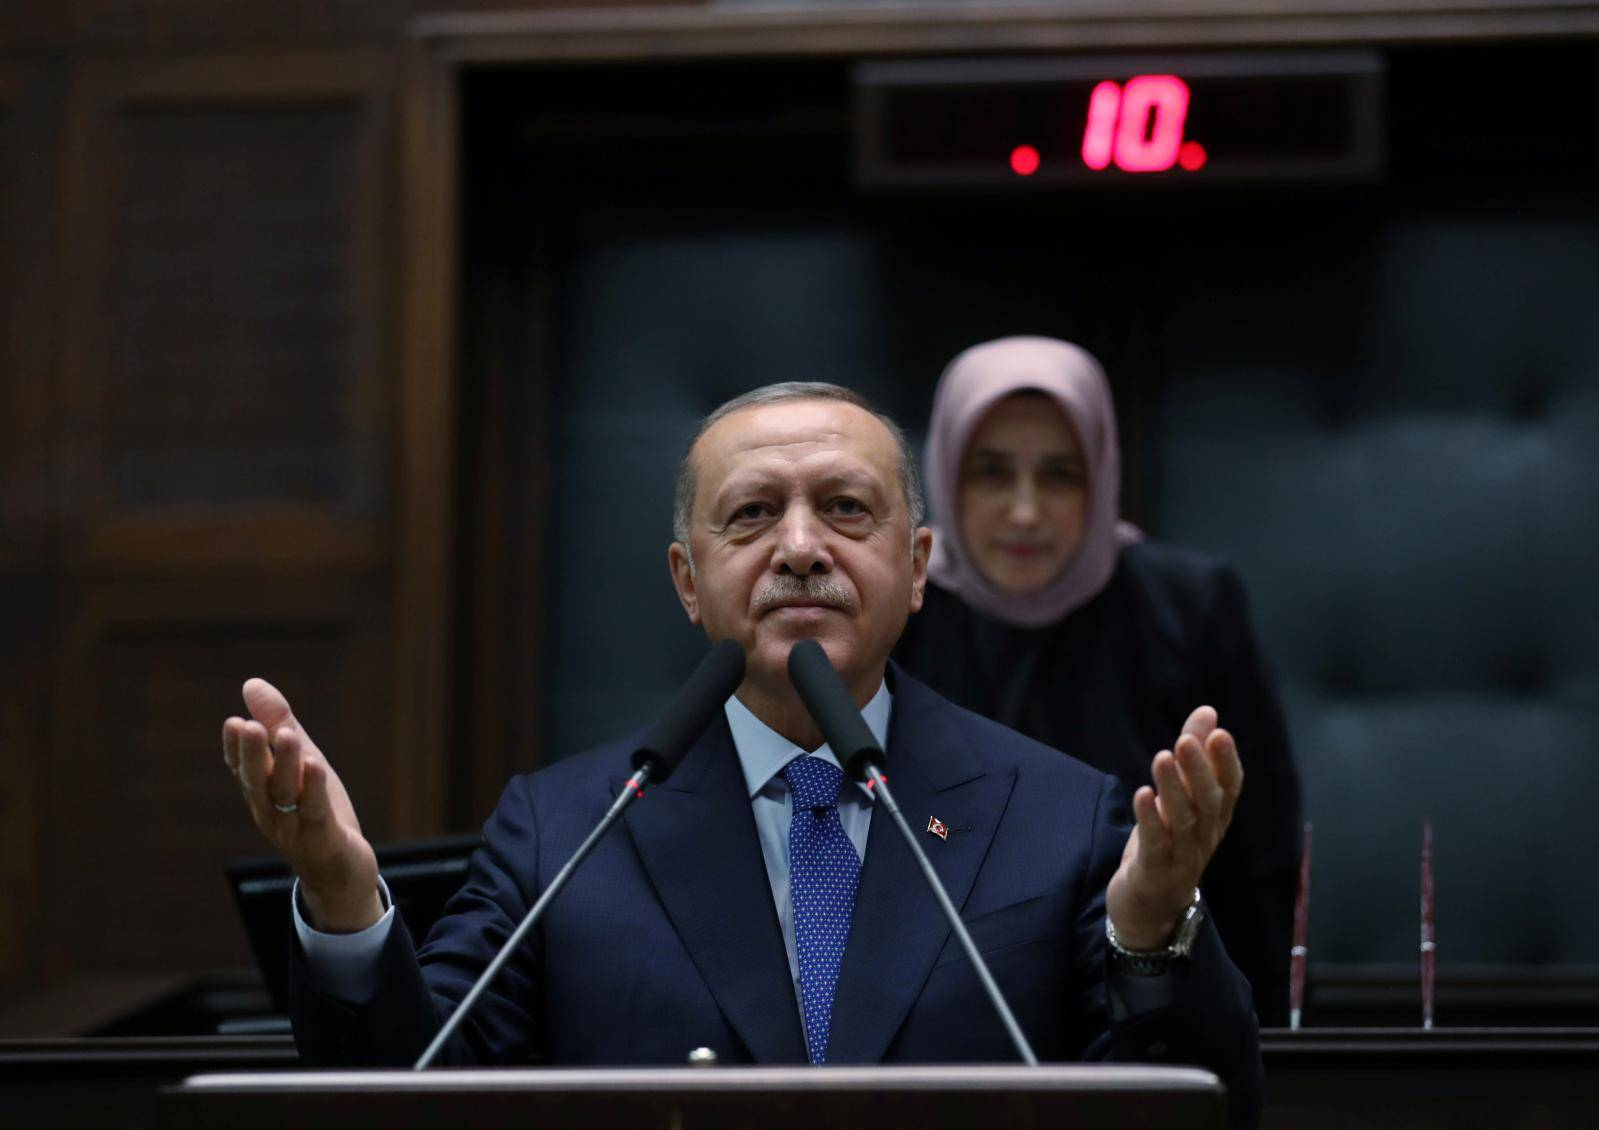 Turkish President Erdogan addresses members of his ruling AK Party in Ankara